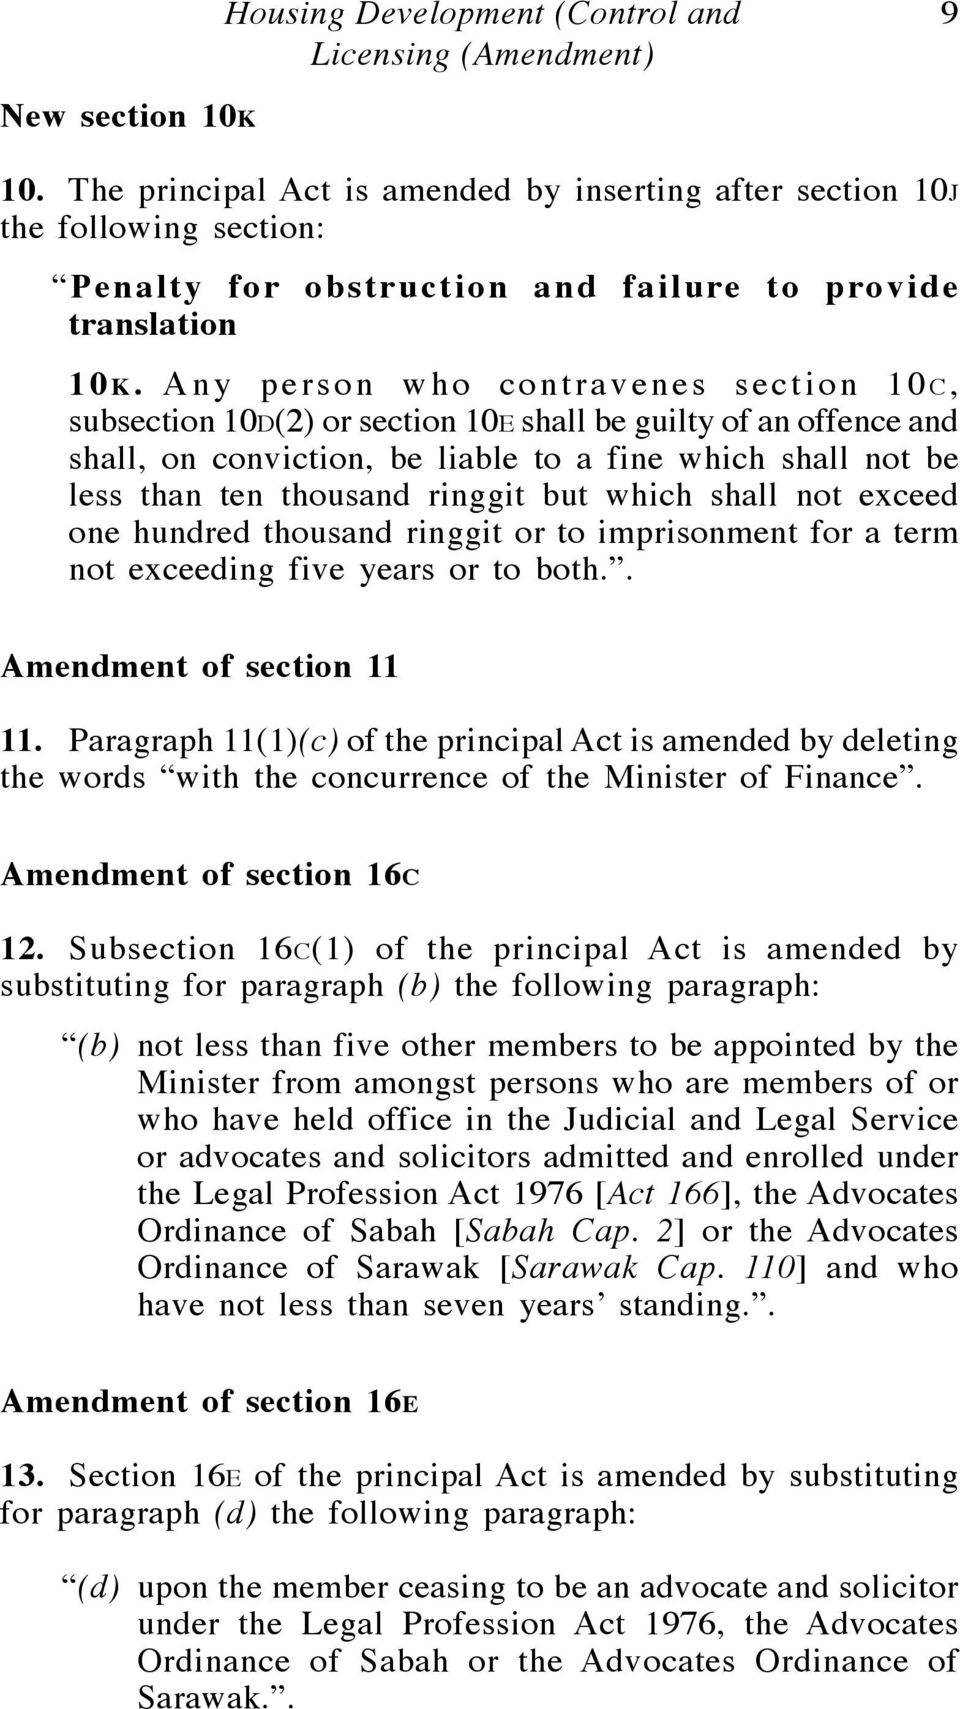 Any person who contravenes section 10C, subsection 10D(2) or section 10E shall be guilty of an offence and shall, on conviction, be liable to a fine which shall not be less than ten thousand ringgit